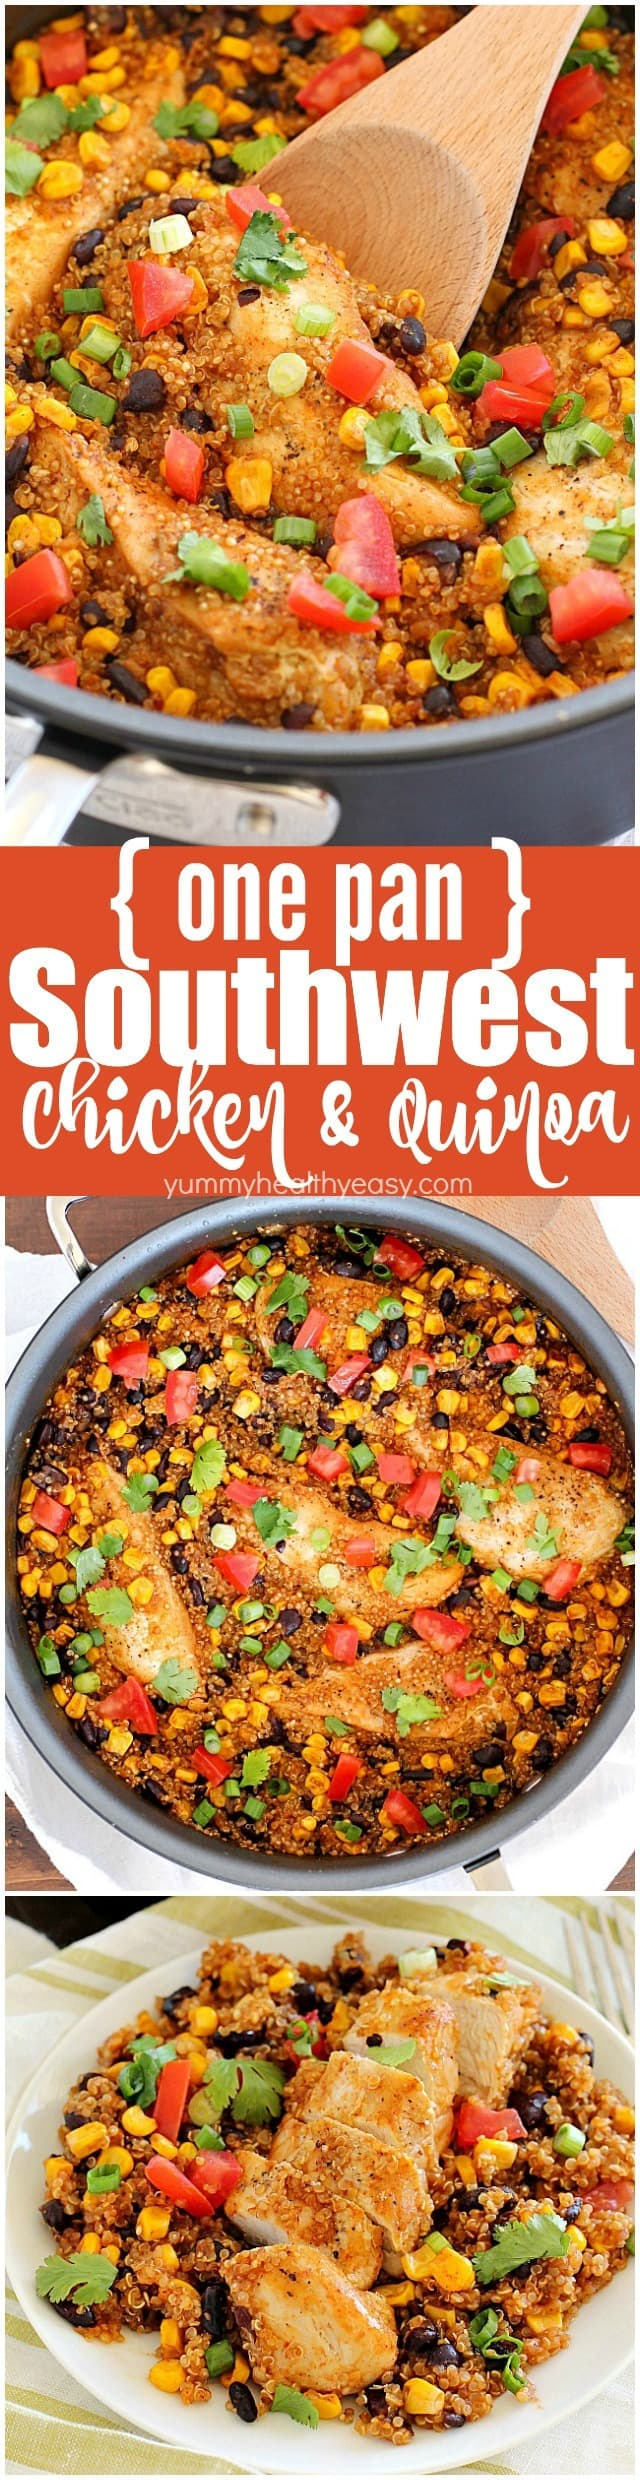 Southwest Chicken & Quinoa dinner cooked in only one pan and made in 30 minutes! You're definitely going to want to add this to your dinner rotation! It's gluten-free, high in protein and totally delicious!